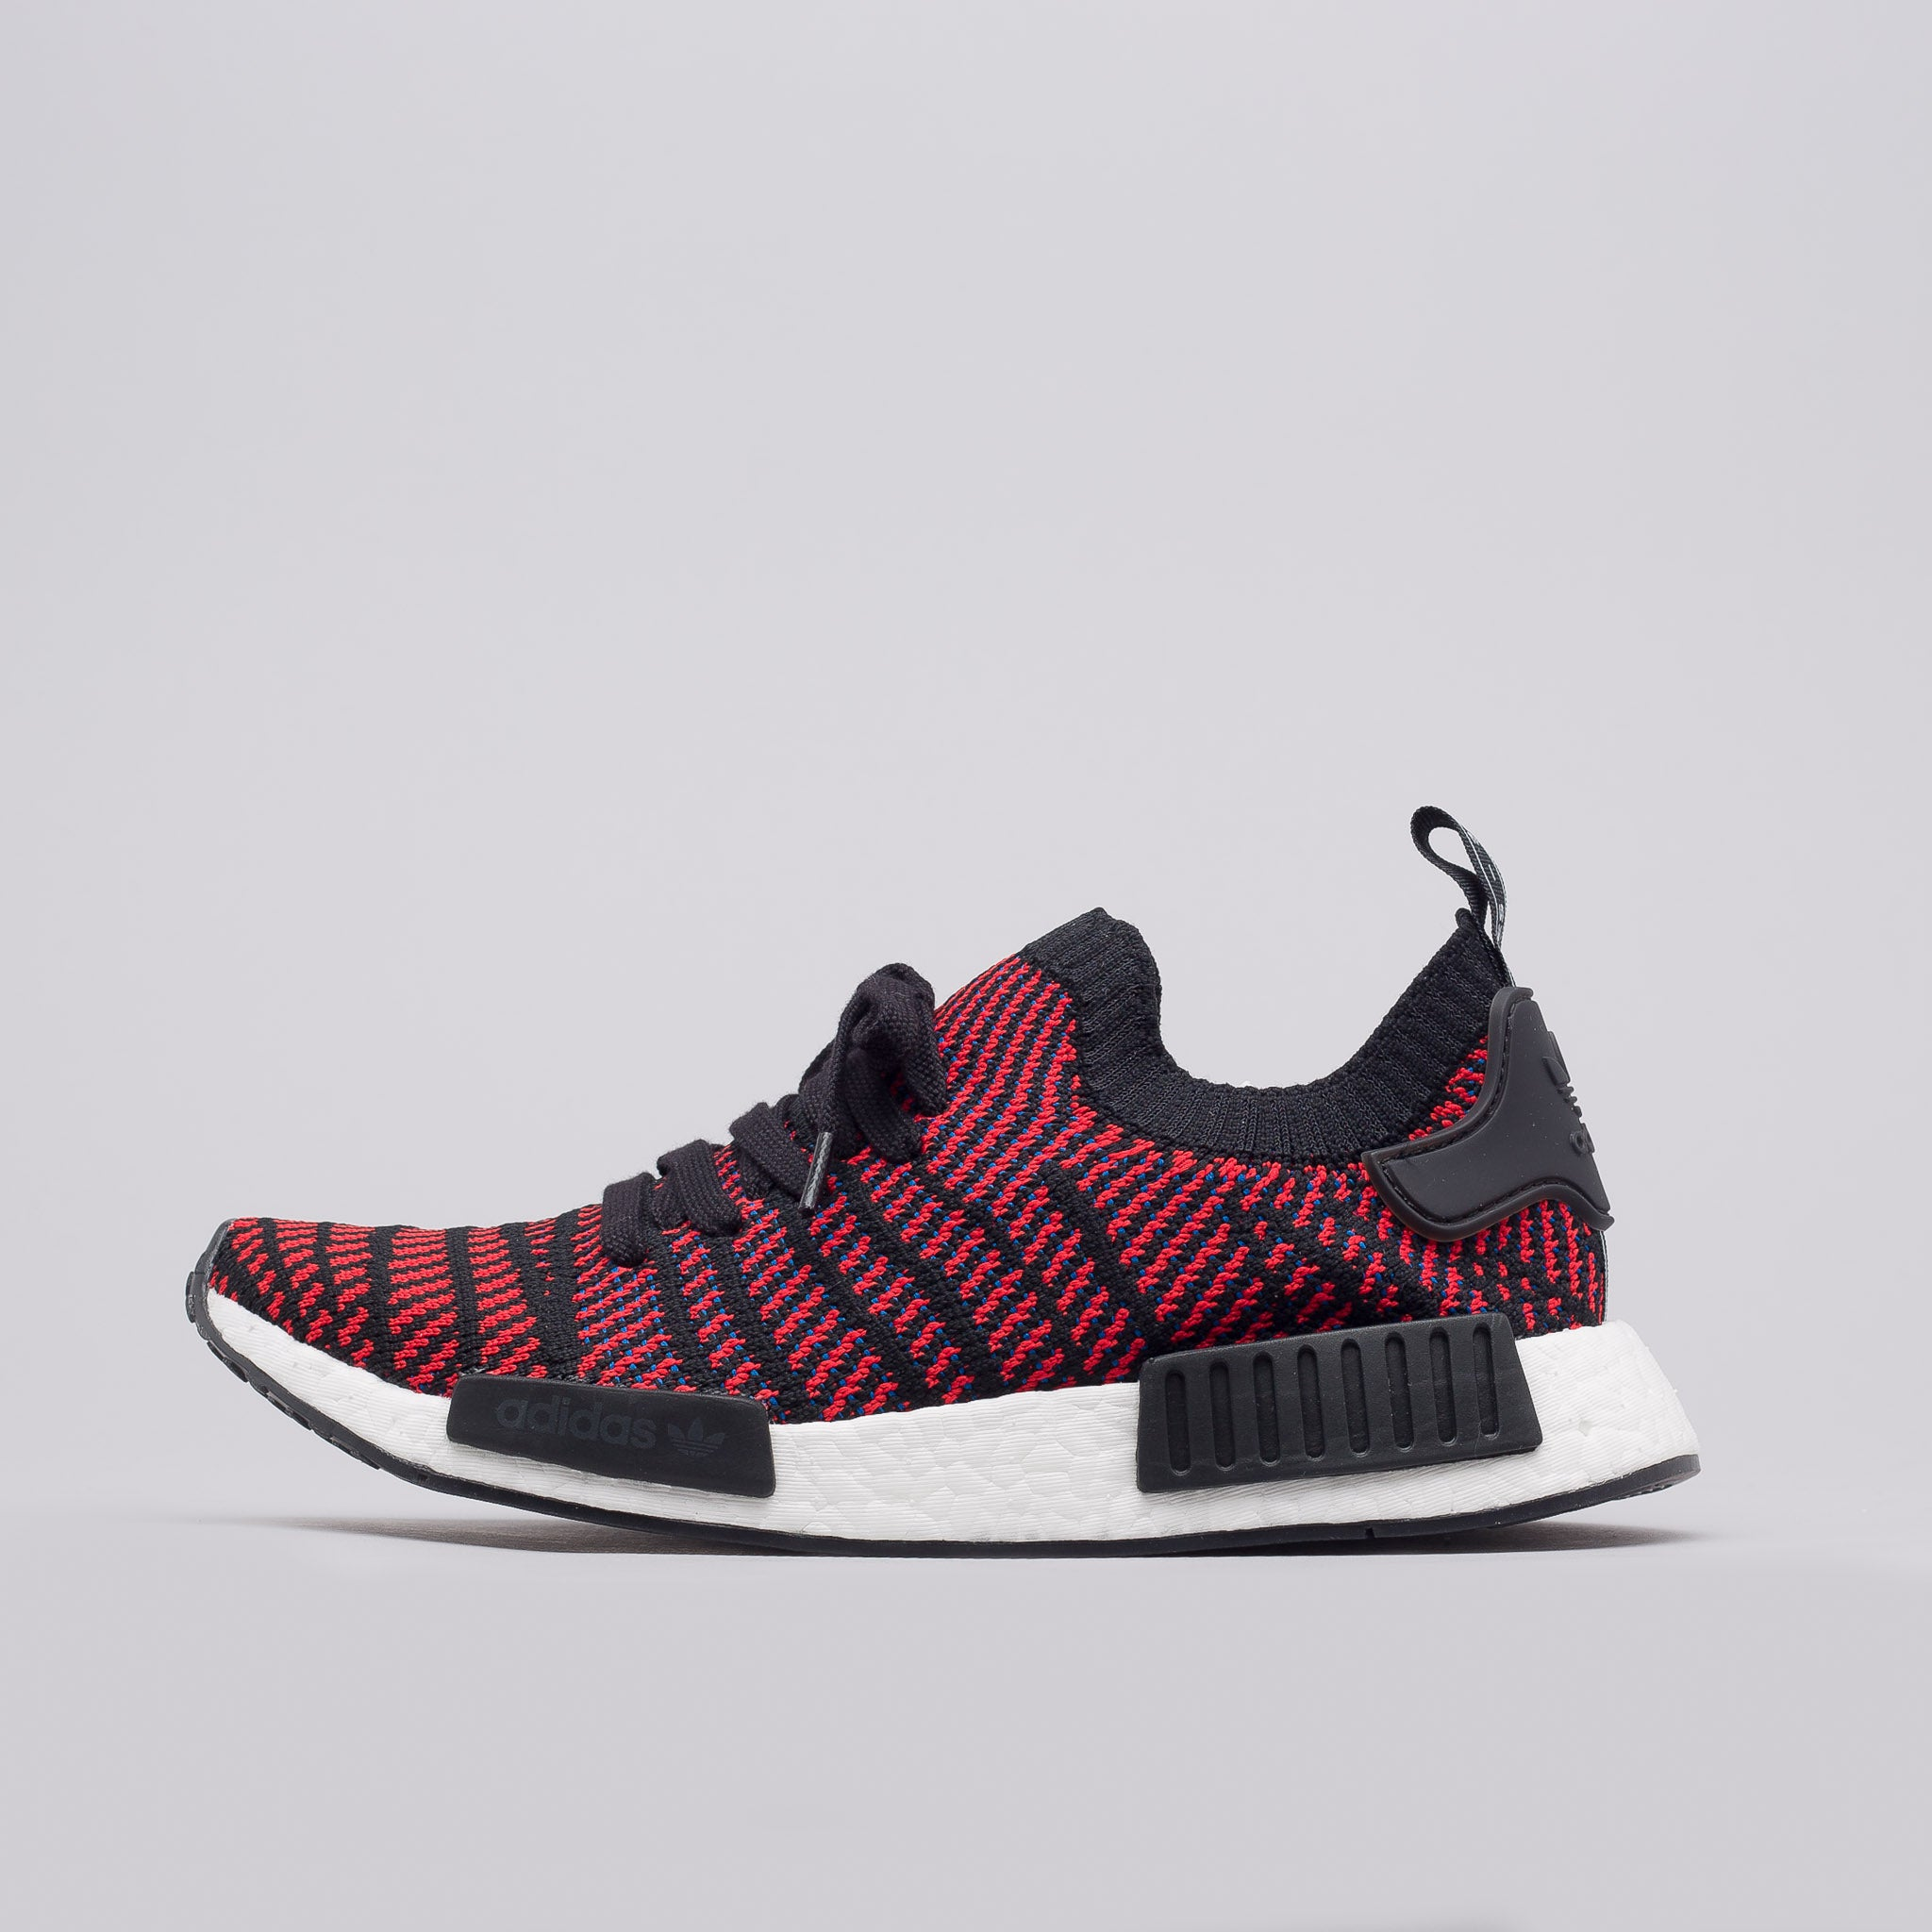 DS adidas NMD R1 Black Reflective Mens Sz 7.5 S31505 White